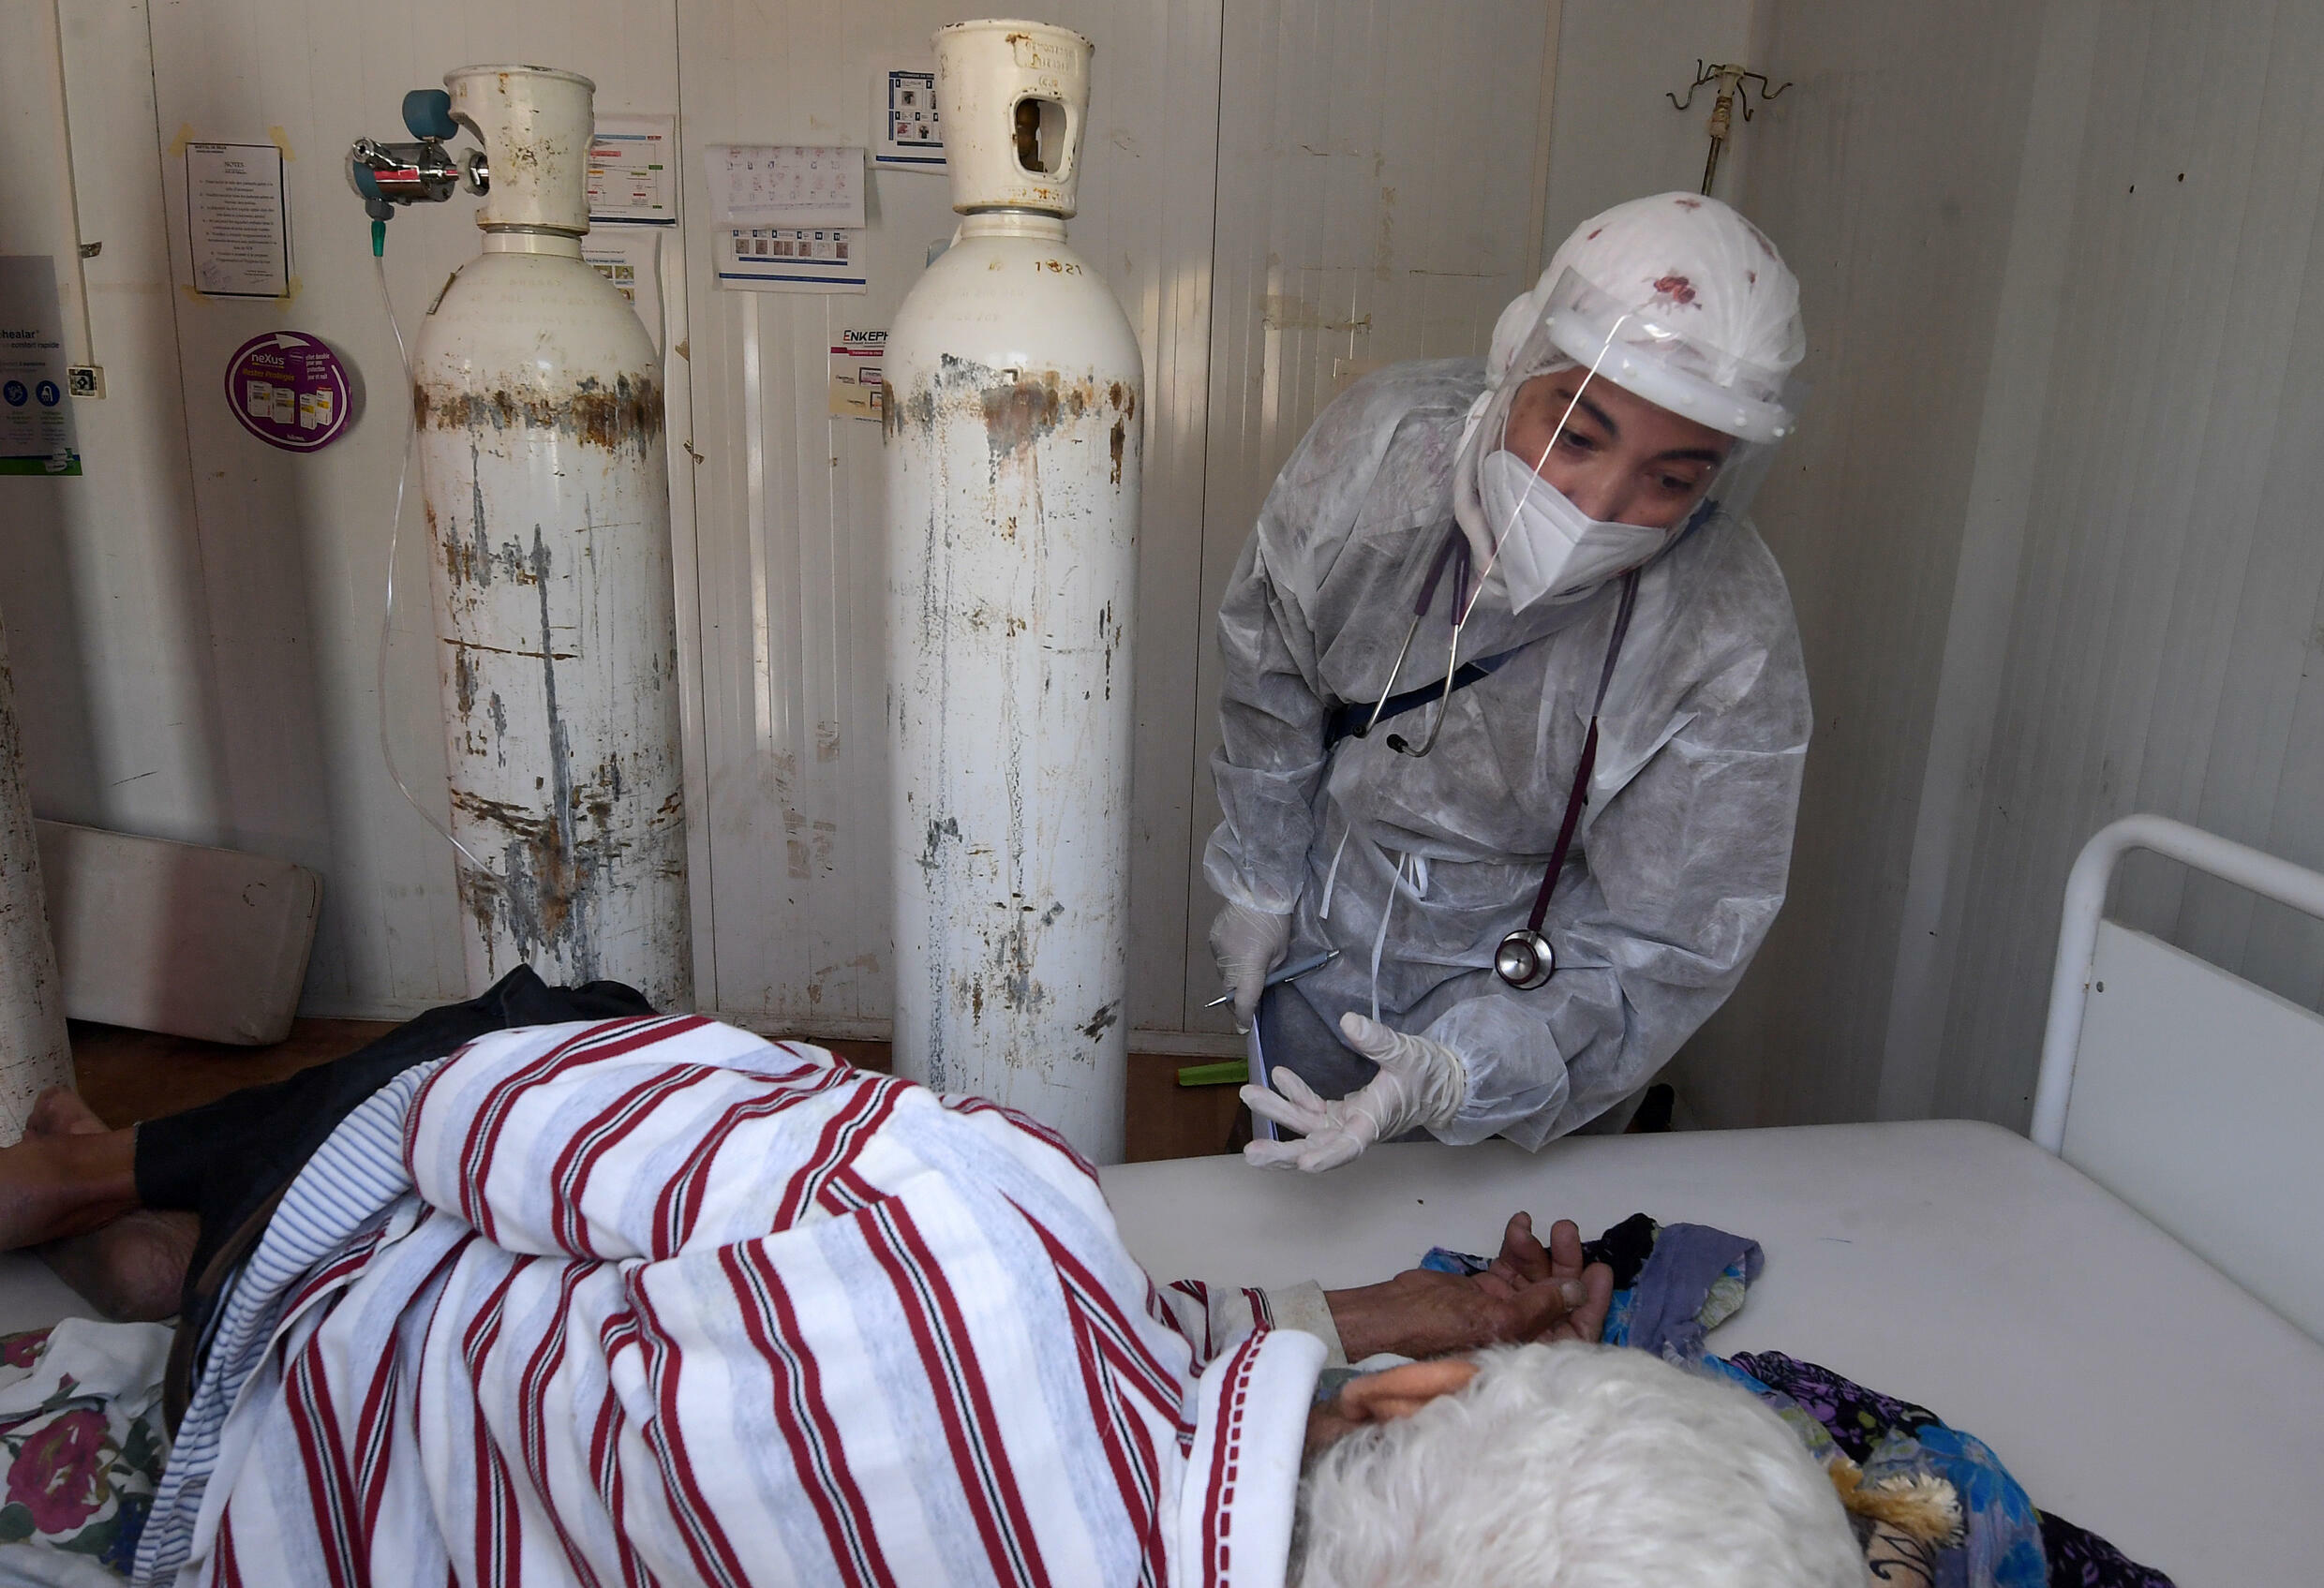 Image RFI Archive - Tunisia's crumbling health system